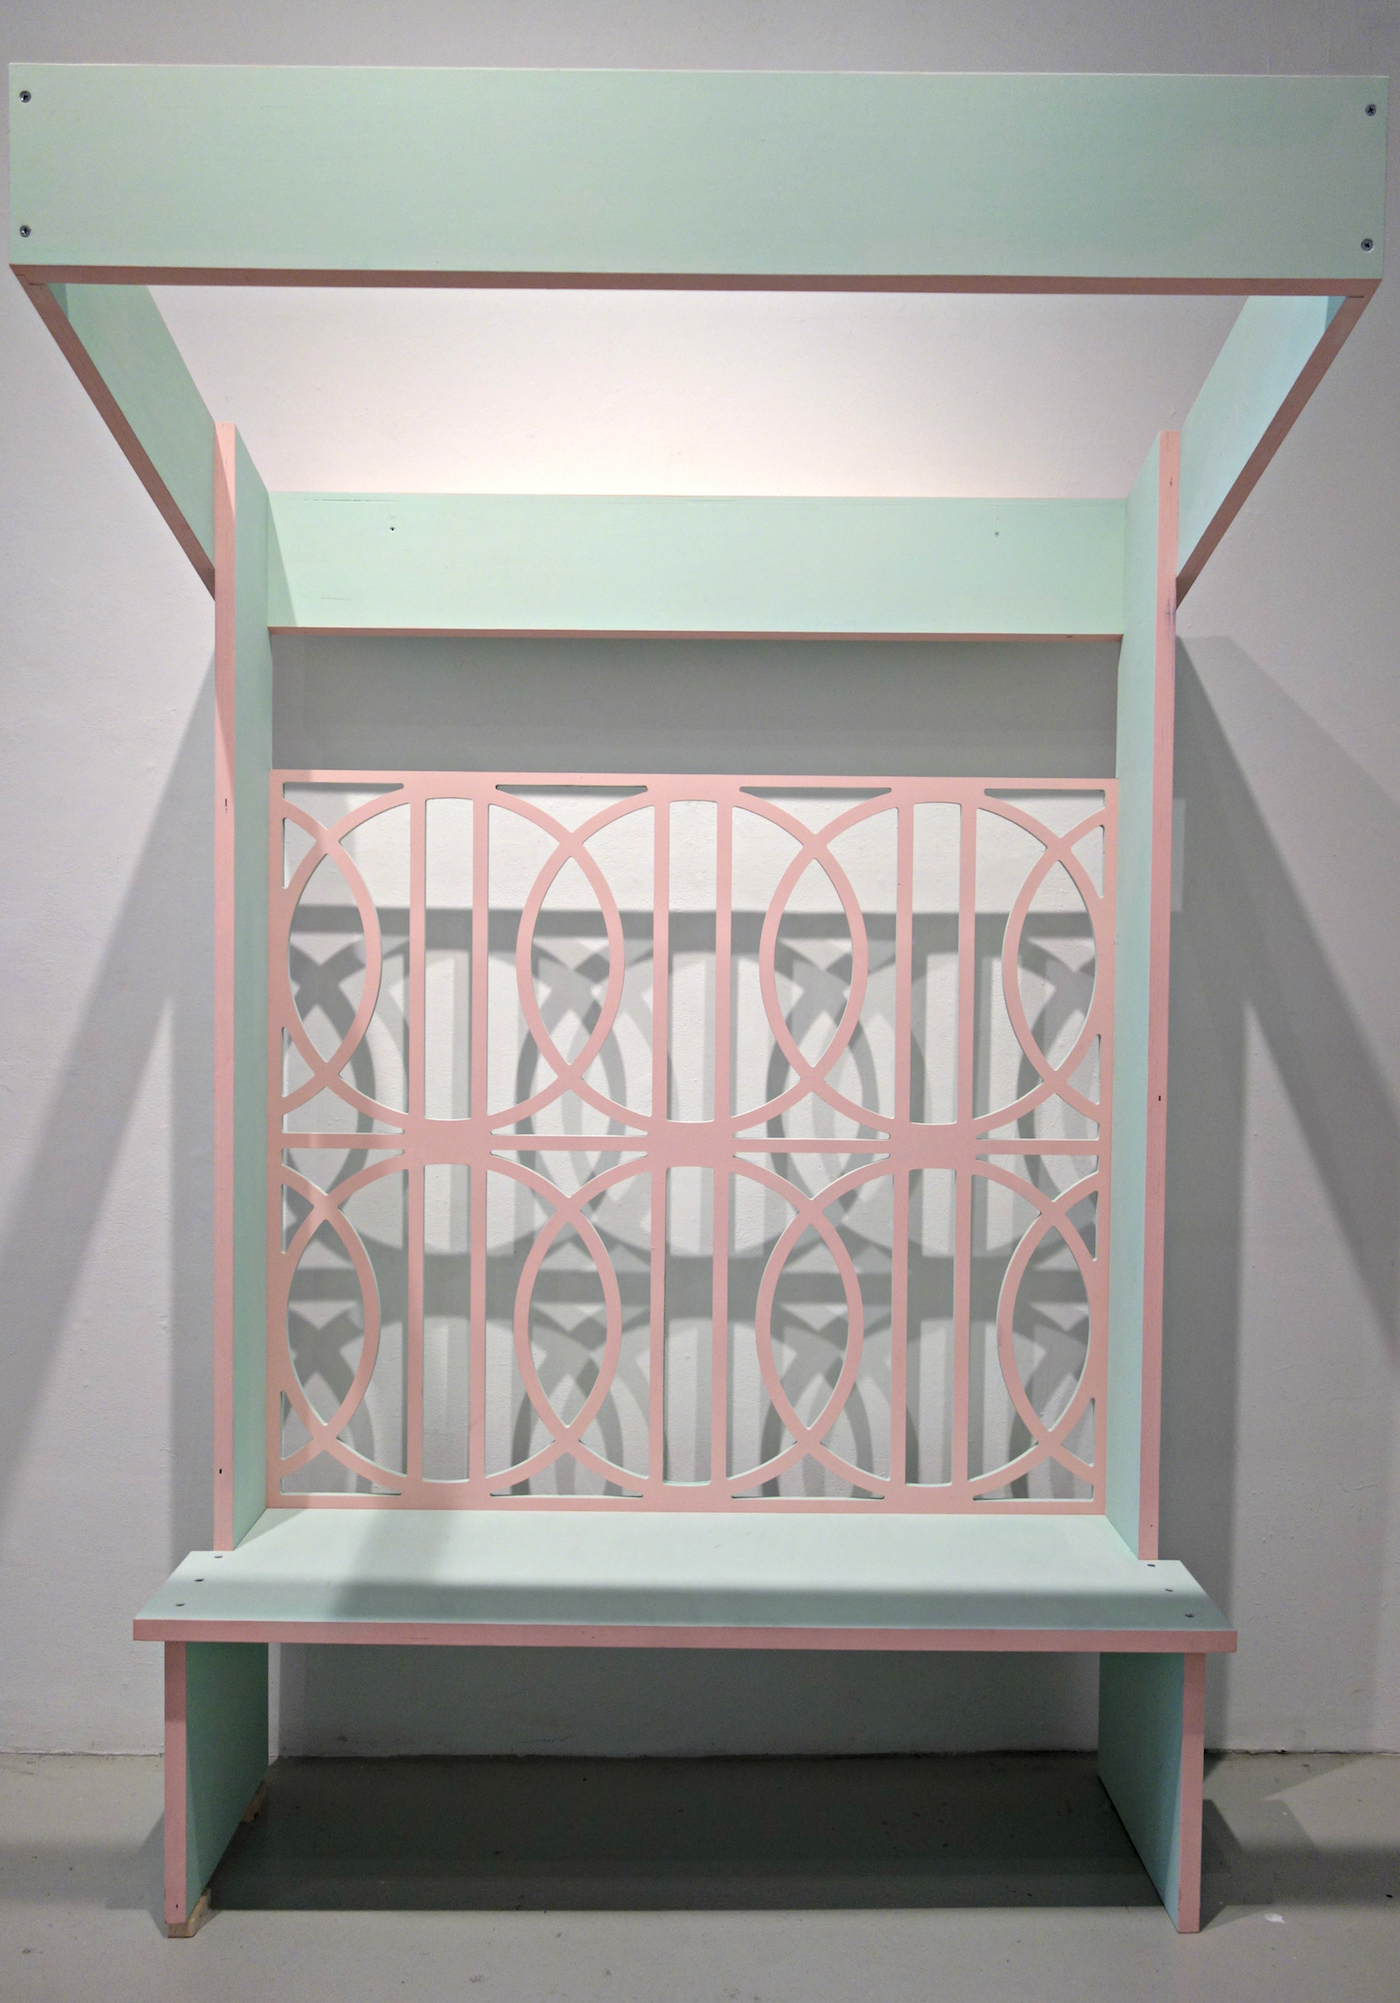 Installation view of 'Graft' by Edra Soto at Cuchifritos Gallery